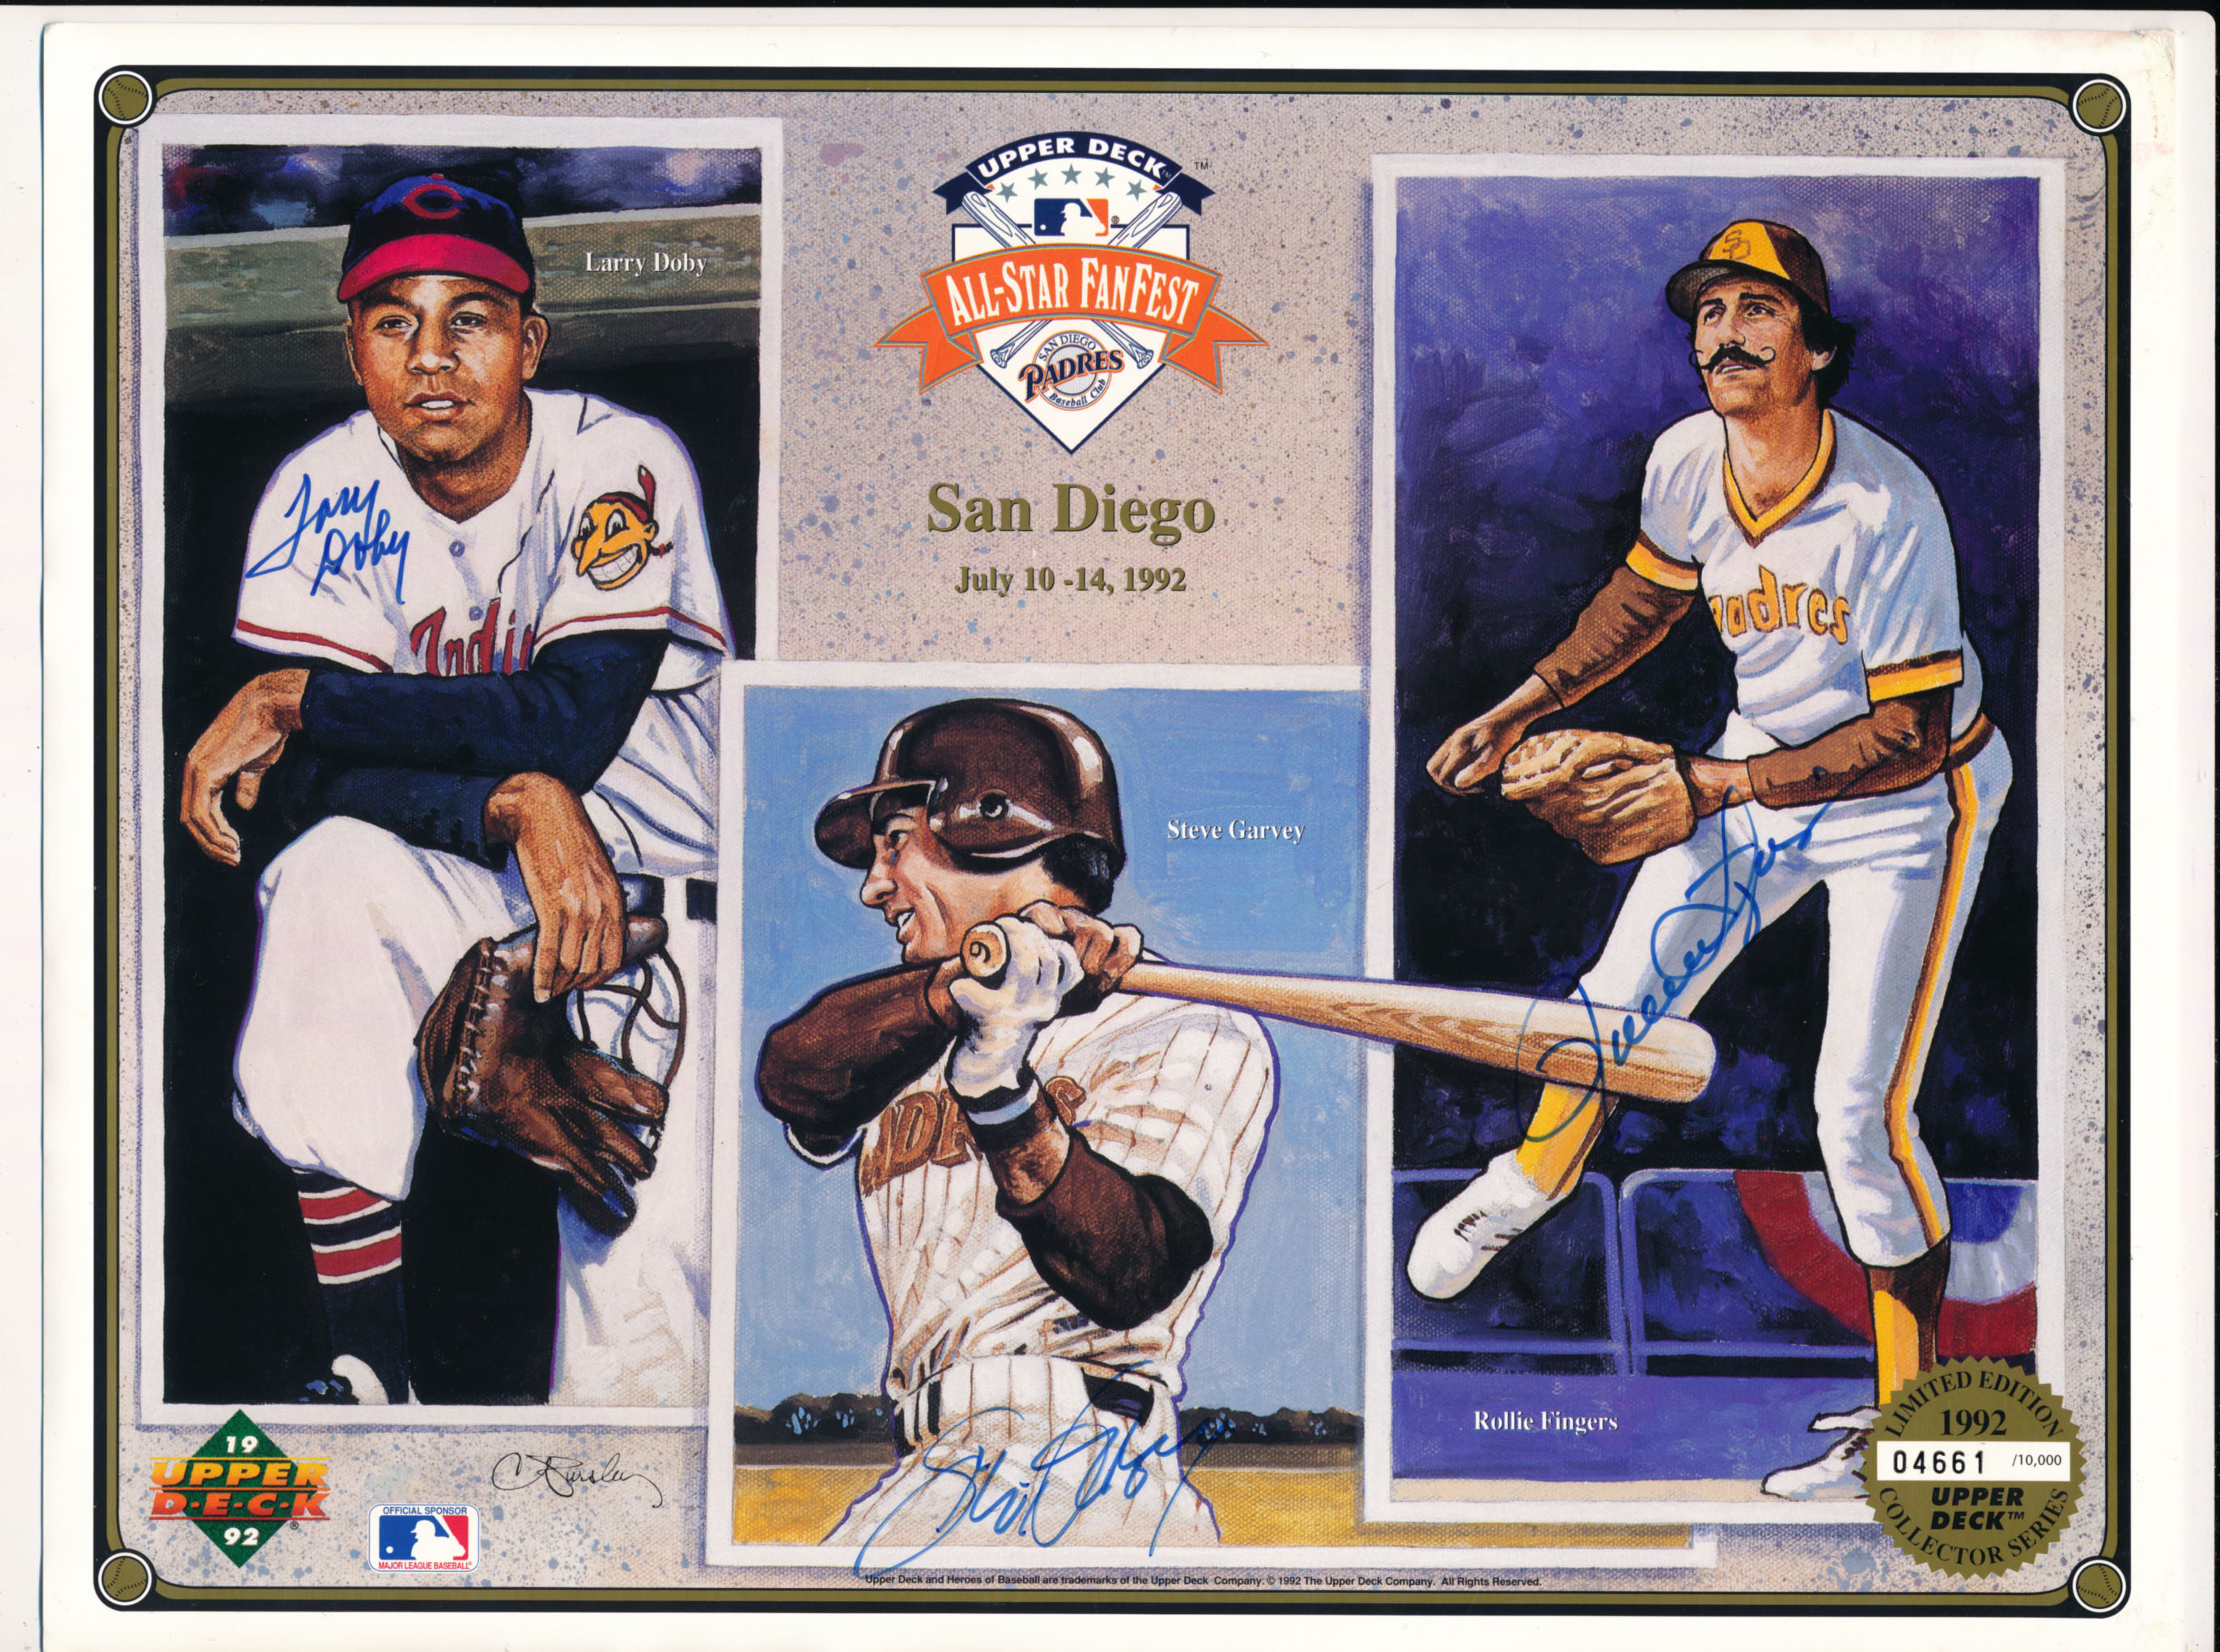 Lot #534  8 x 10  Doby/Garvey/R. Fingers Signed 1992 Padres Fanfest Print Cond: 9.5